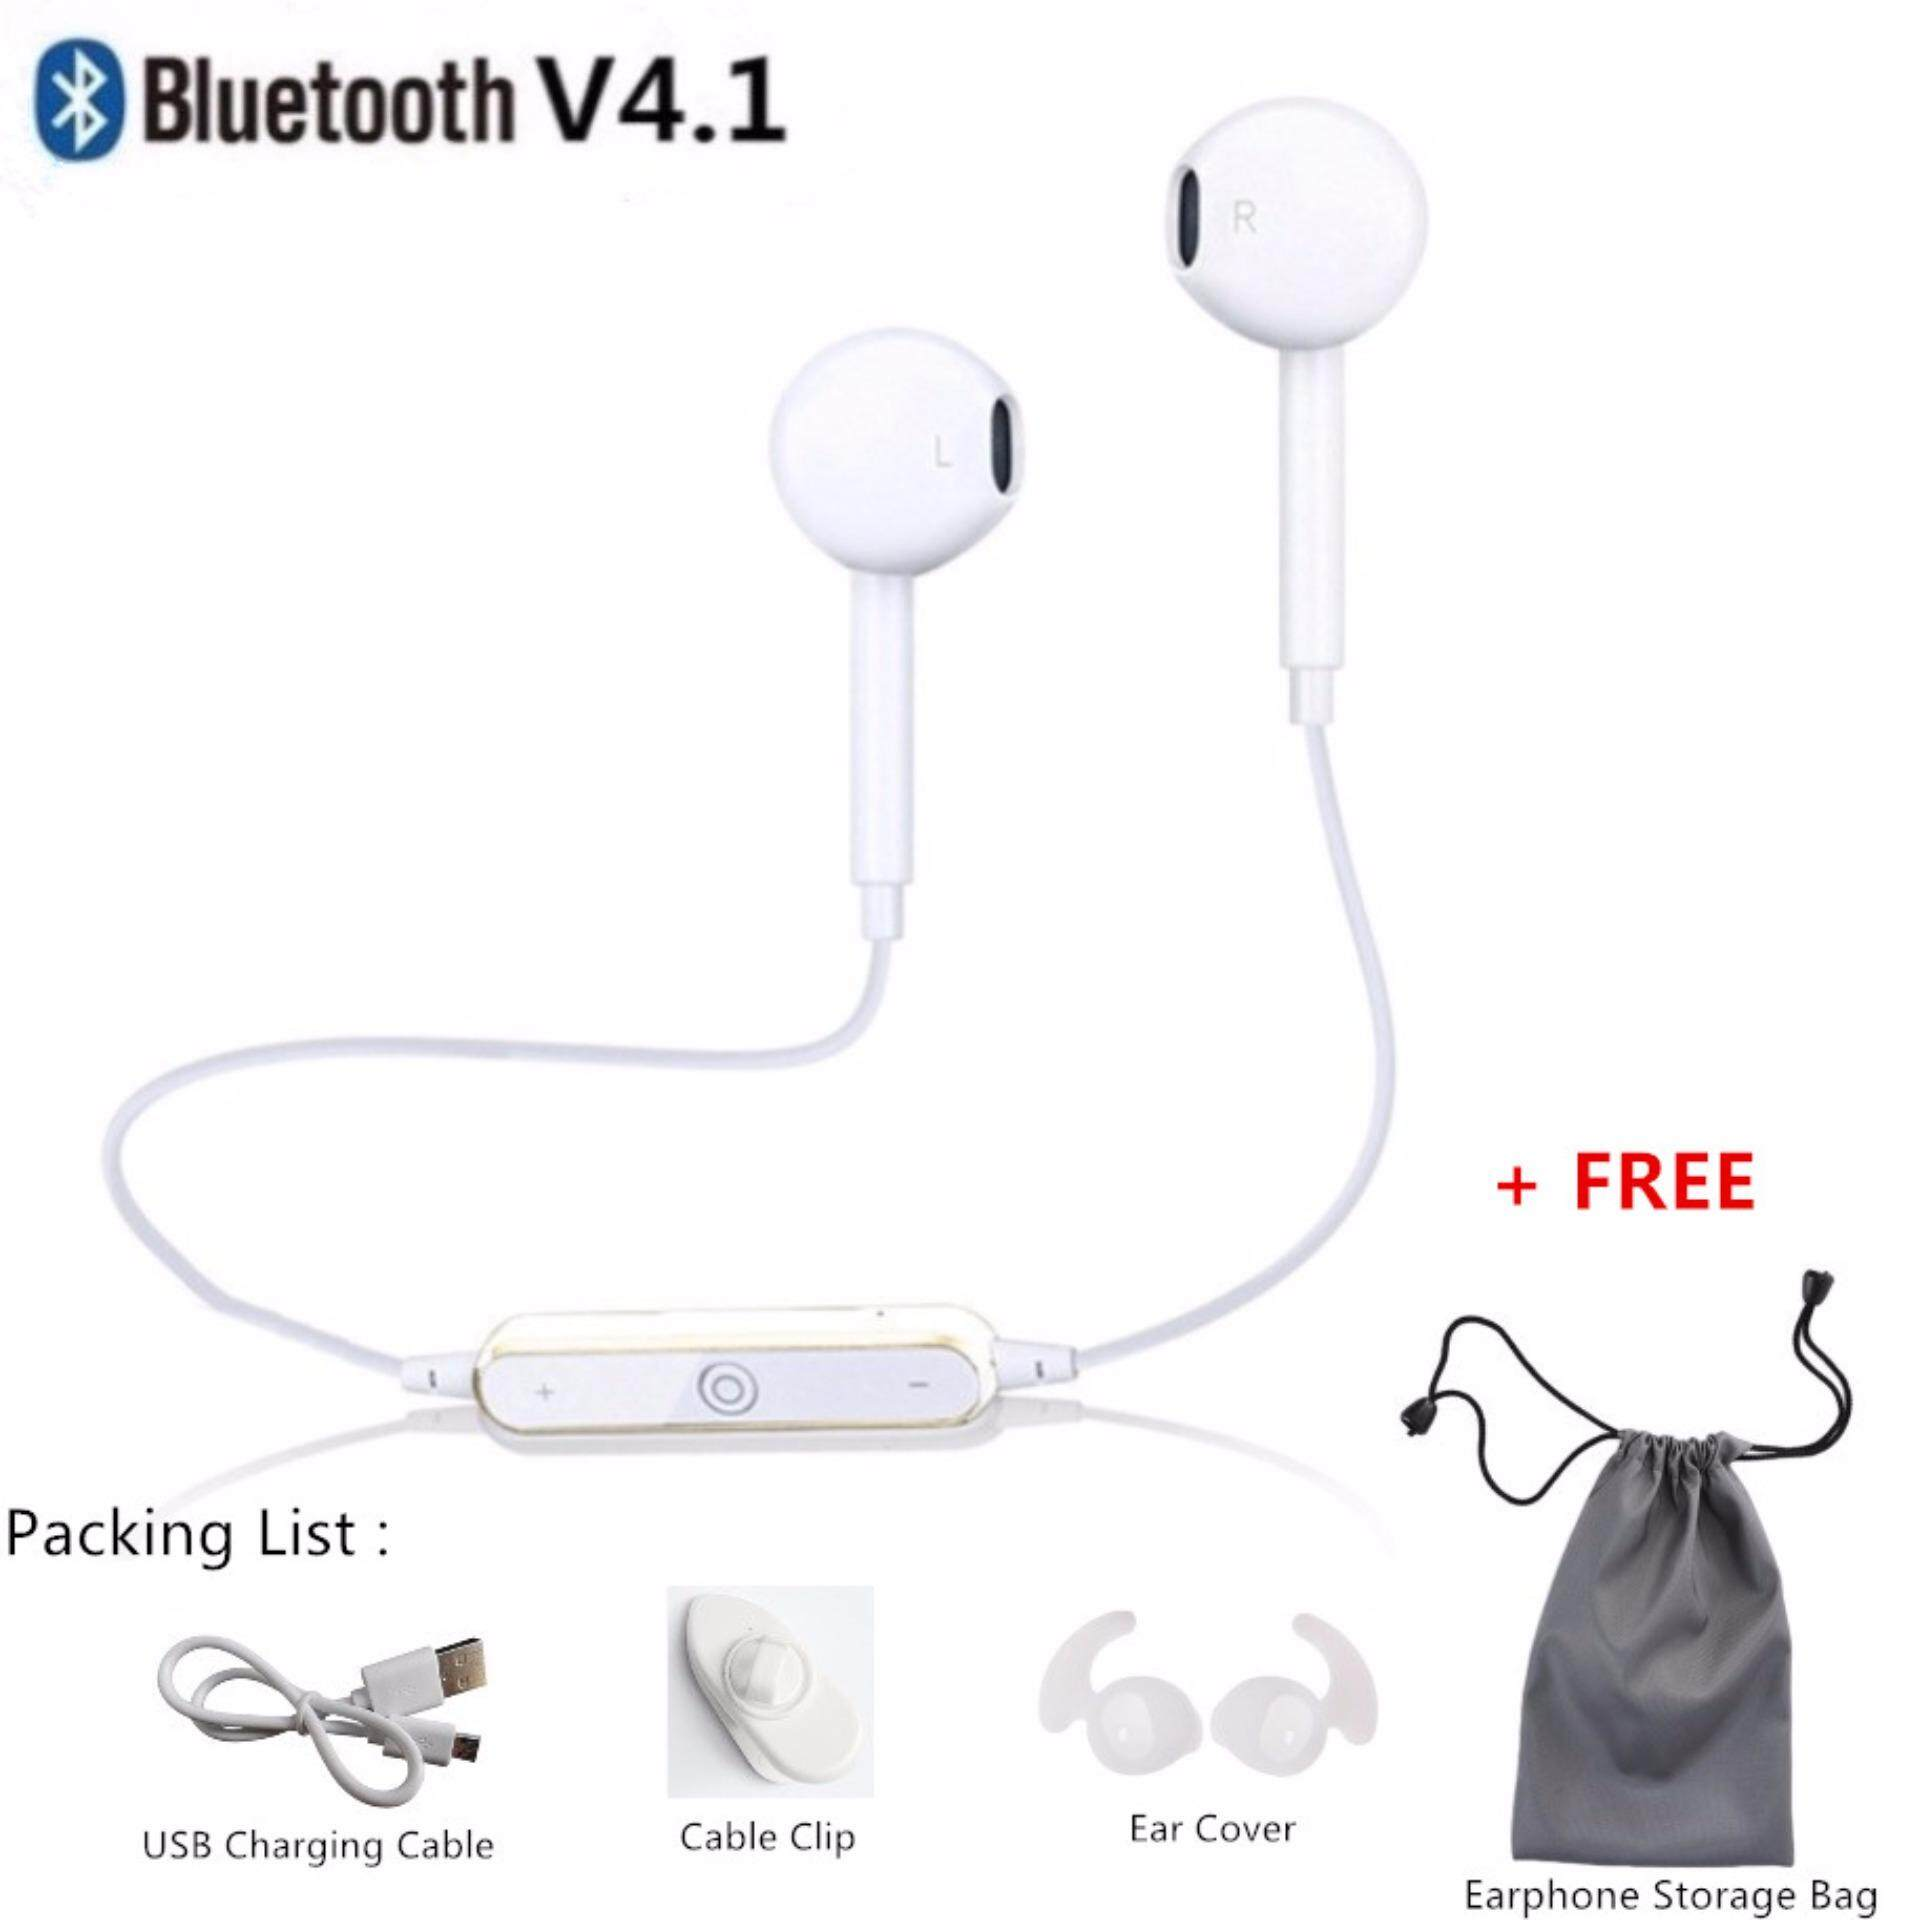 Headphones Headsets Buy At Best Price In Jbl Ear Wireless Headphone Everest 100 Hitam Malaysia